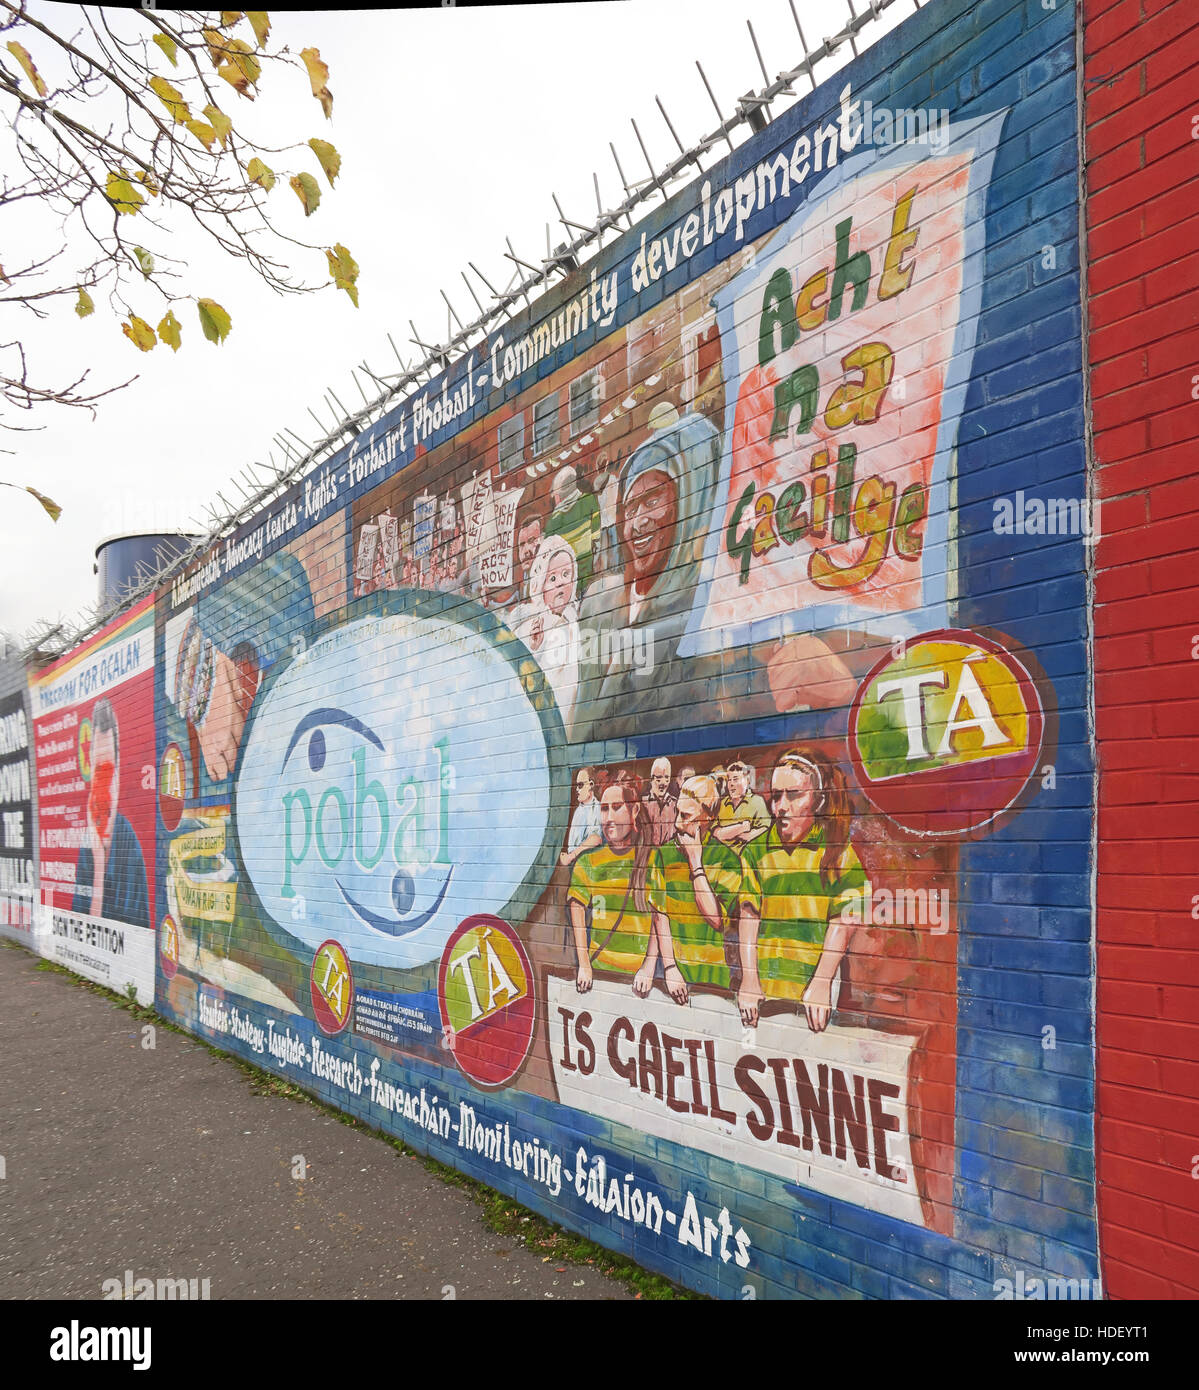 International Peace Wall,Cupar Way,West Belfast,Northern Ireland,UK,International,Peace,Wall,Cupar,Belfast,arts,development,Is gaeil sinne,is,gaeil,sinne,mural,GoTonySmith,@HotpixUK,Tony,Smith,UK,GB,Great,Britain,United,Kingdom,Irish,British,Ireland,problem,with,problem with,issue with,NI,Northern,Northern Ireland,Belfast,City,Centre,Art,Artists,the,troubles,The Troubles,Good Friday Agreement,Peace,honour,painting,wall,walls,tribute,republicanism,Fight,Justice,West,Beal,feirste,martyrs,social,tour,tourism,tourists,urban,six,counties,6,backdrop,county,Antrim,Buy Pictures of,Buy Images Of,Images of,Stock Images,Tony Smith,United Kingdom,Great Britain,British Isles